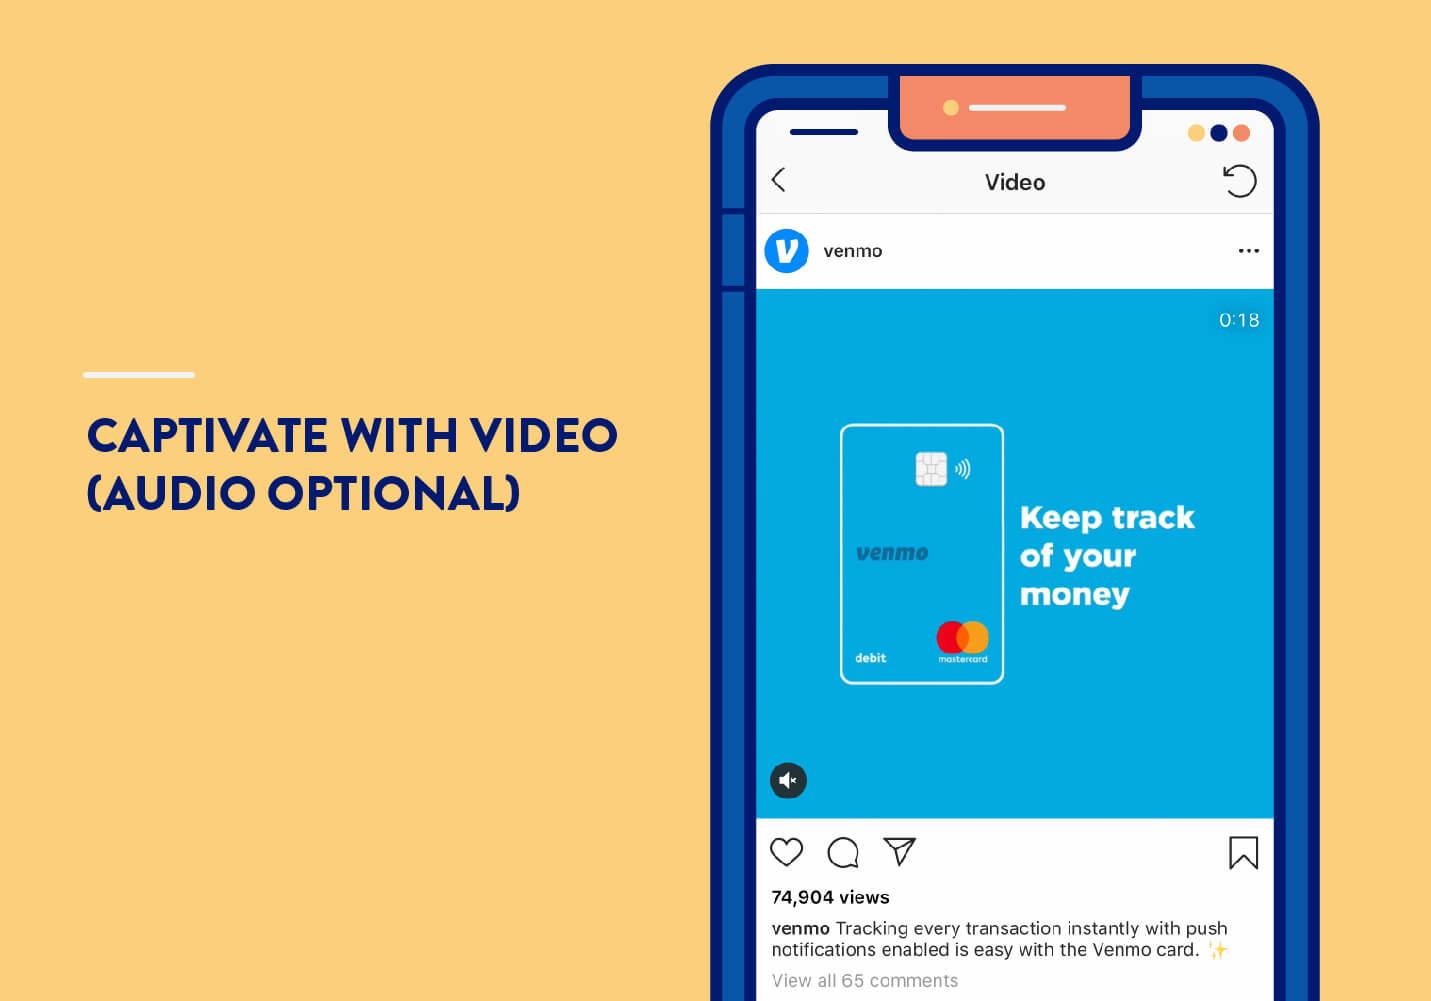 mobile app marketing strategies with example video from venmo on instagram without audio